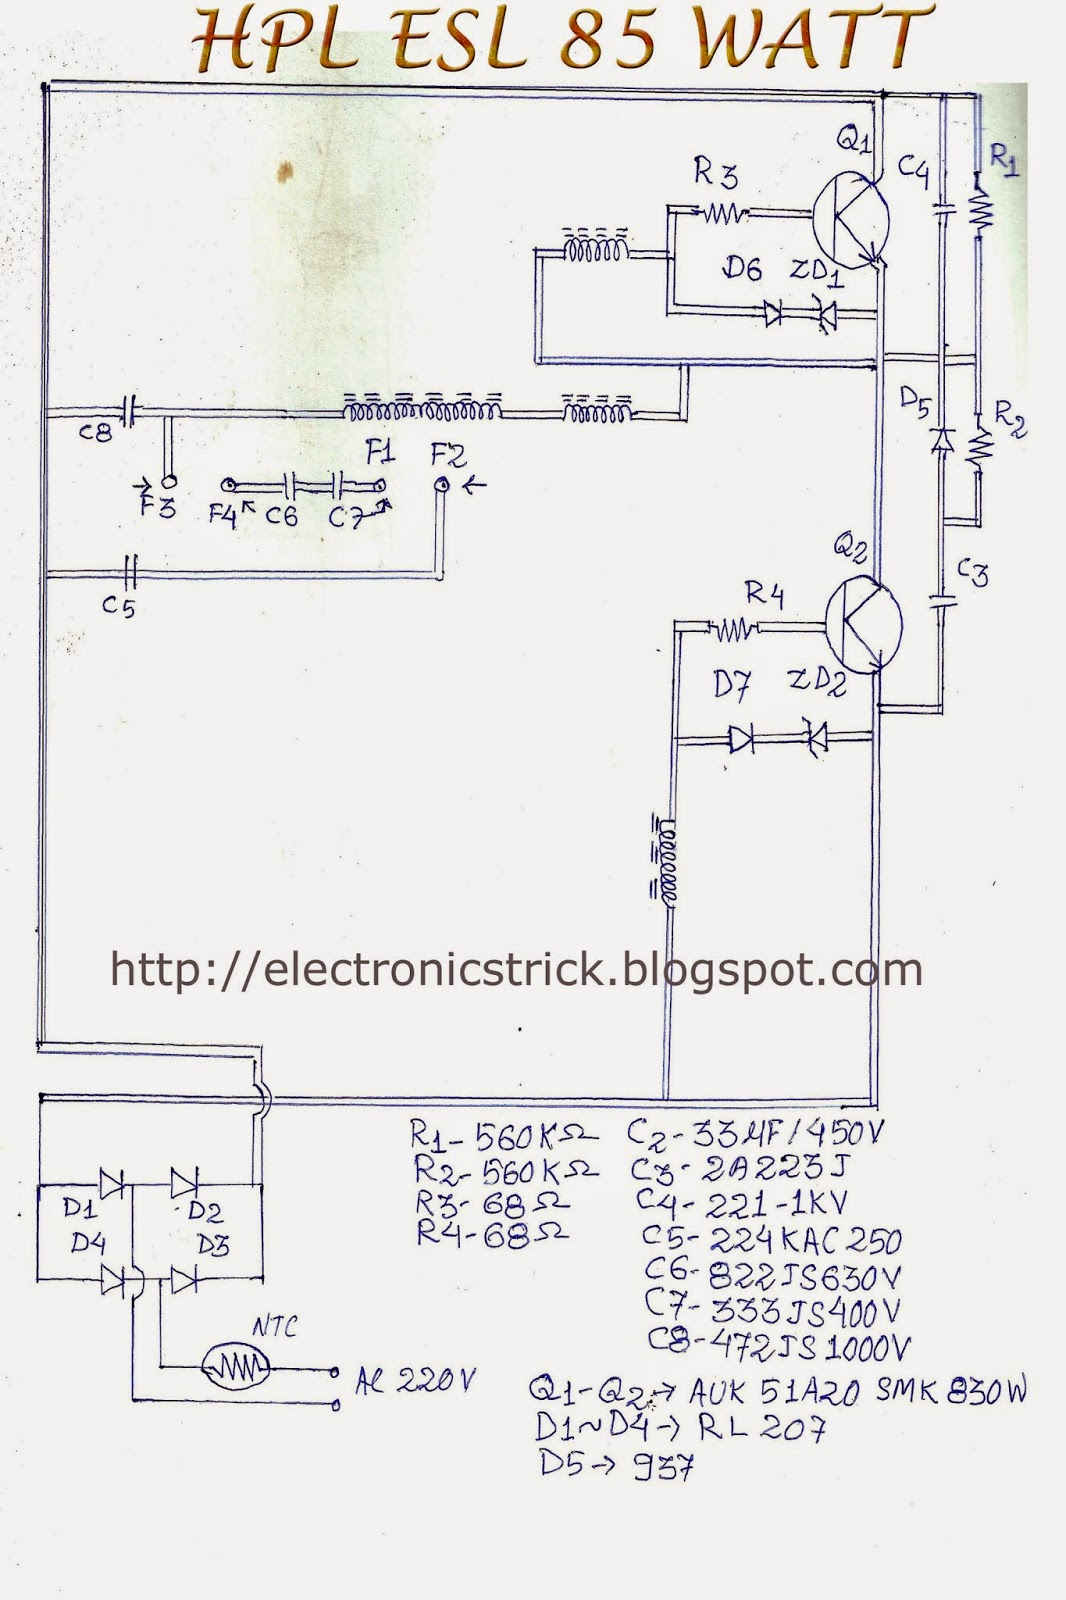 hcl esl 85 watt cfl bulb ckt diagram tips and trick electronic another cfl bulb circuit diagram with details [ 1066 x 1600 Pixel ]